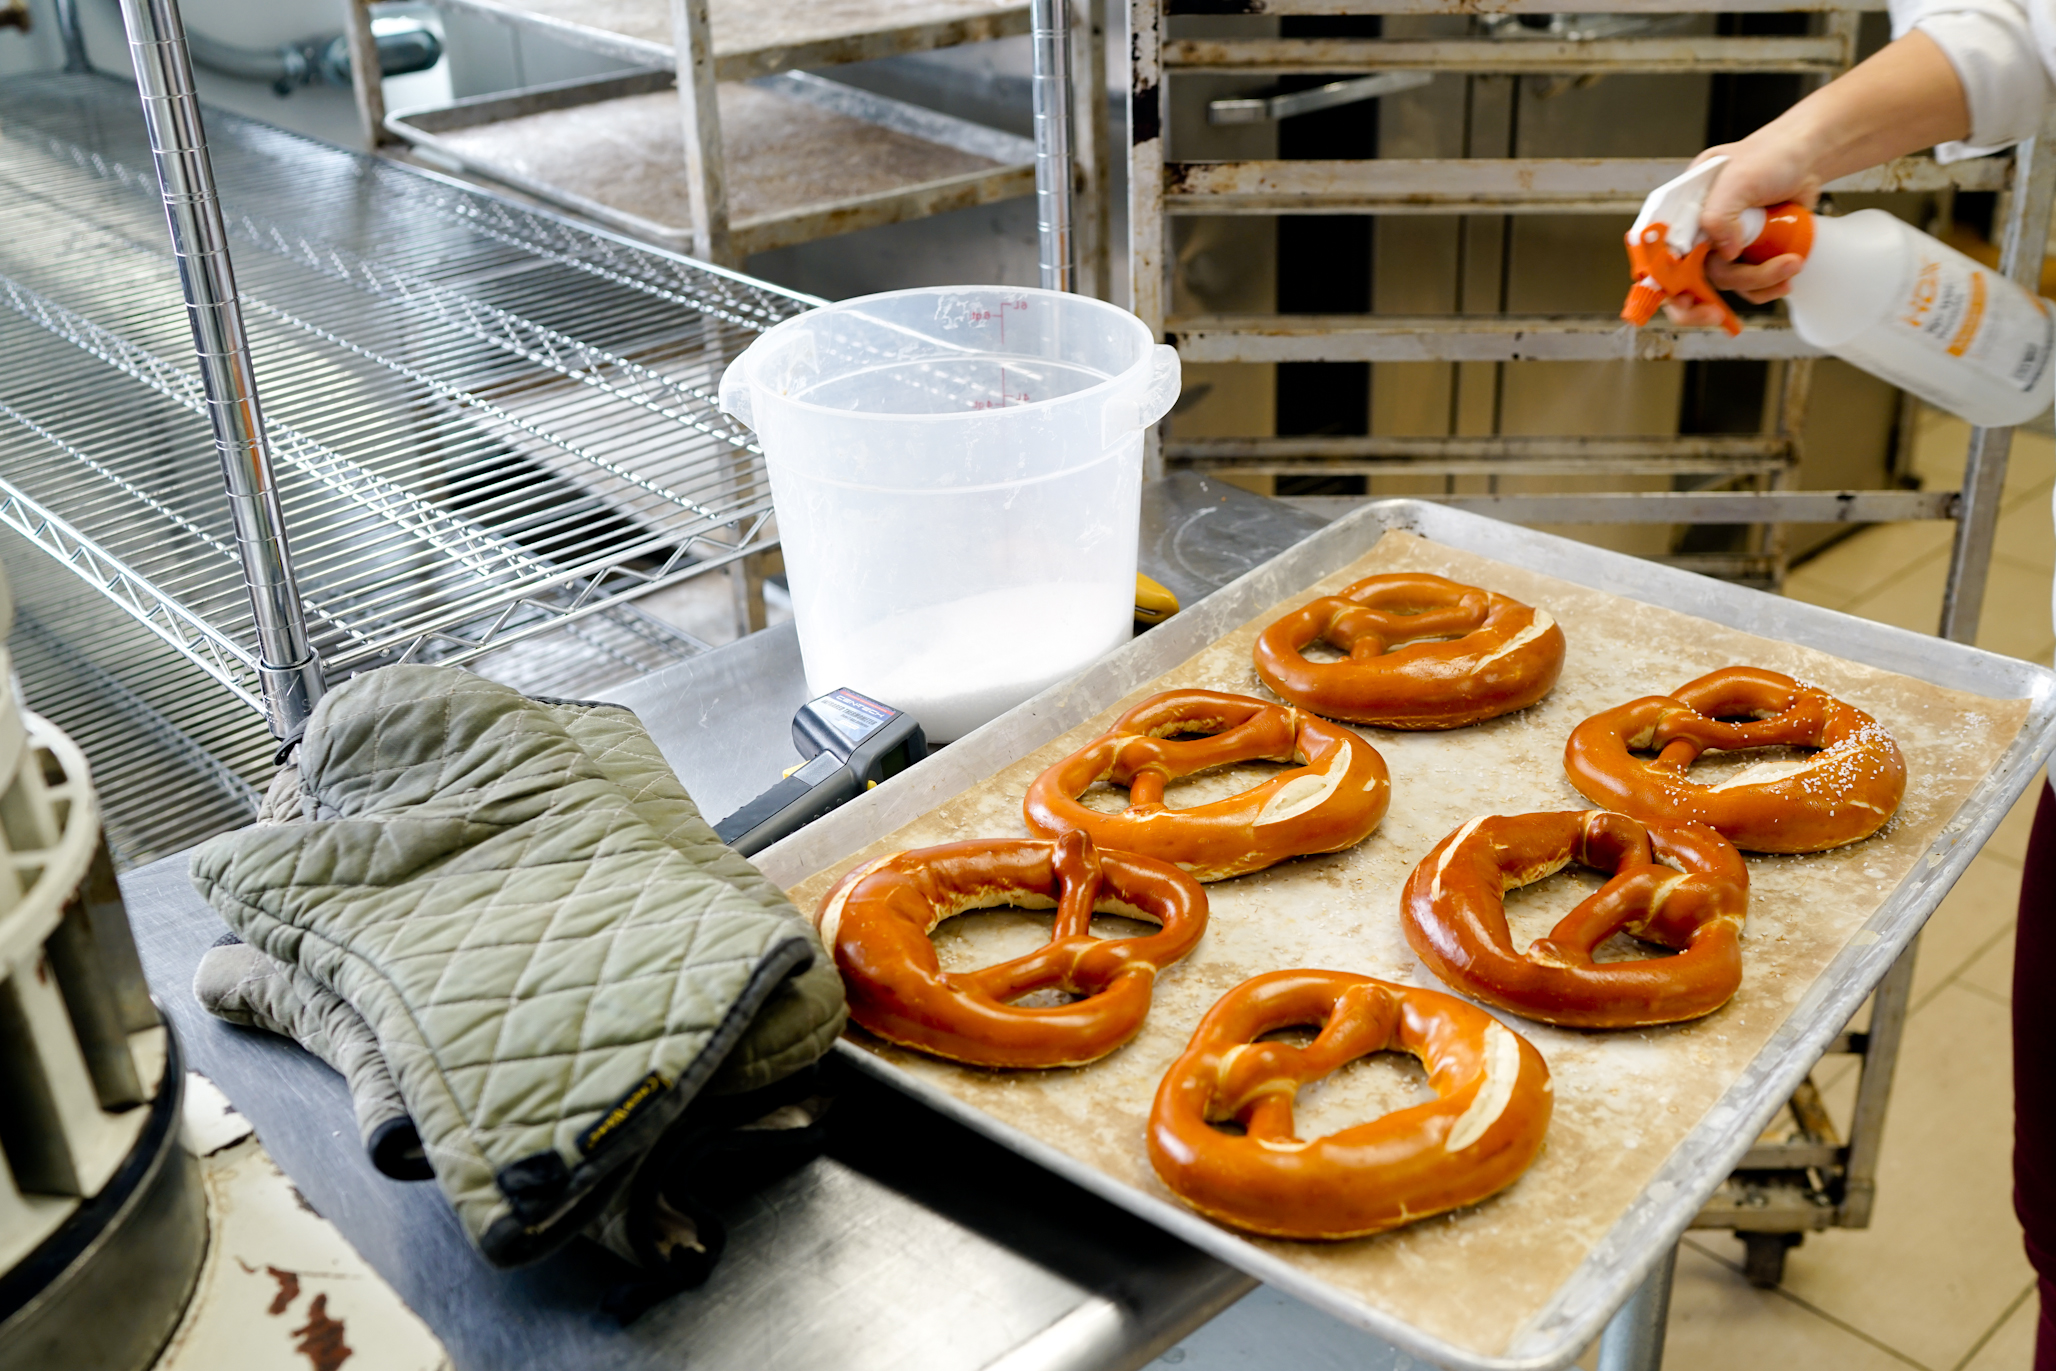 """""""Germans use pretzels as a regular bread and we don't think of pretzels as a regular bread. So sometimes people are like, 'Oh, you make bread?' and I say, 'Yeah, pretzels.' - Alexis Faraci, founder and owner of the Bronx Baking Co."""